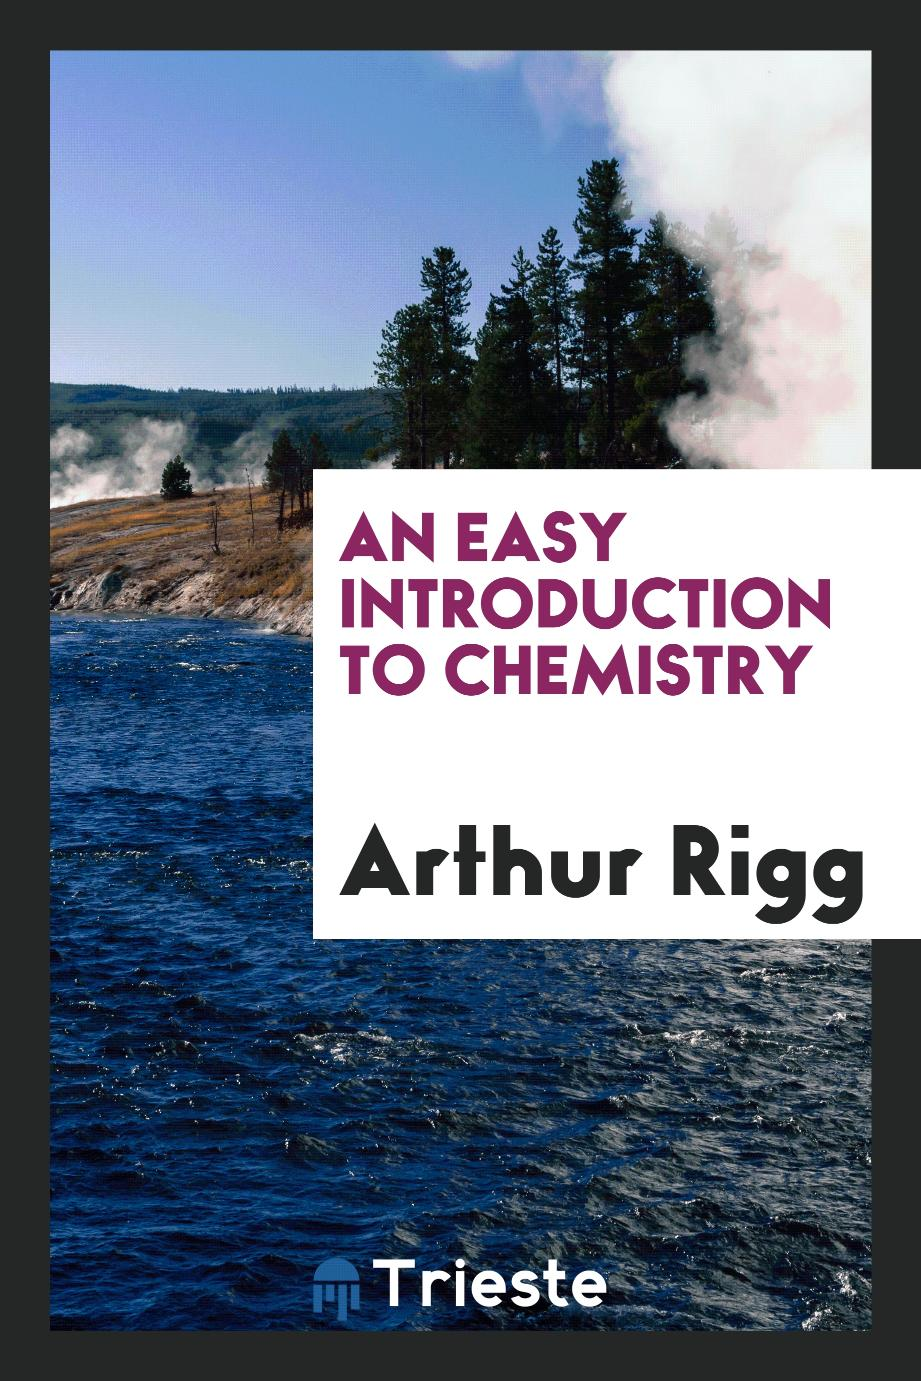 An Easy Introduction to Chemistry